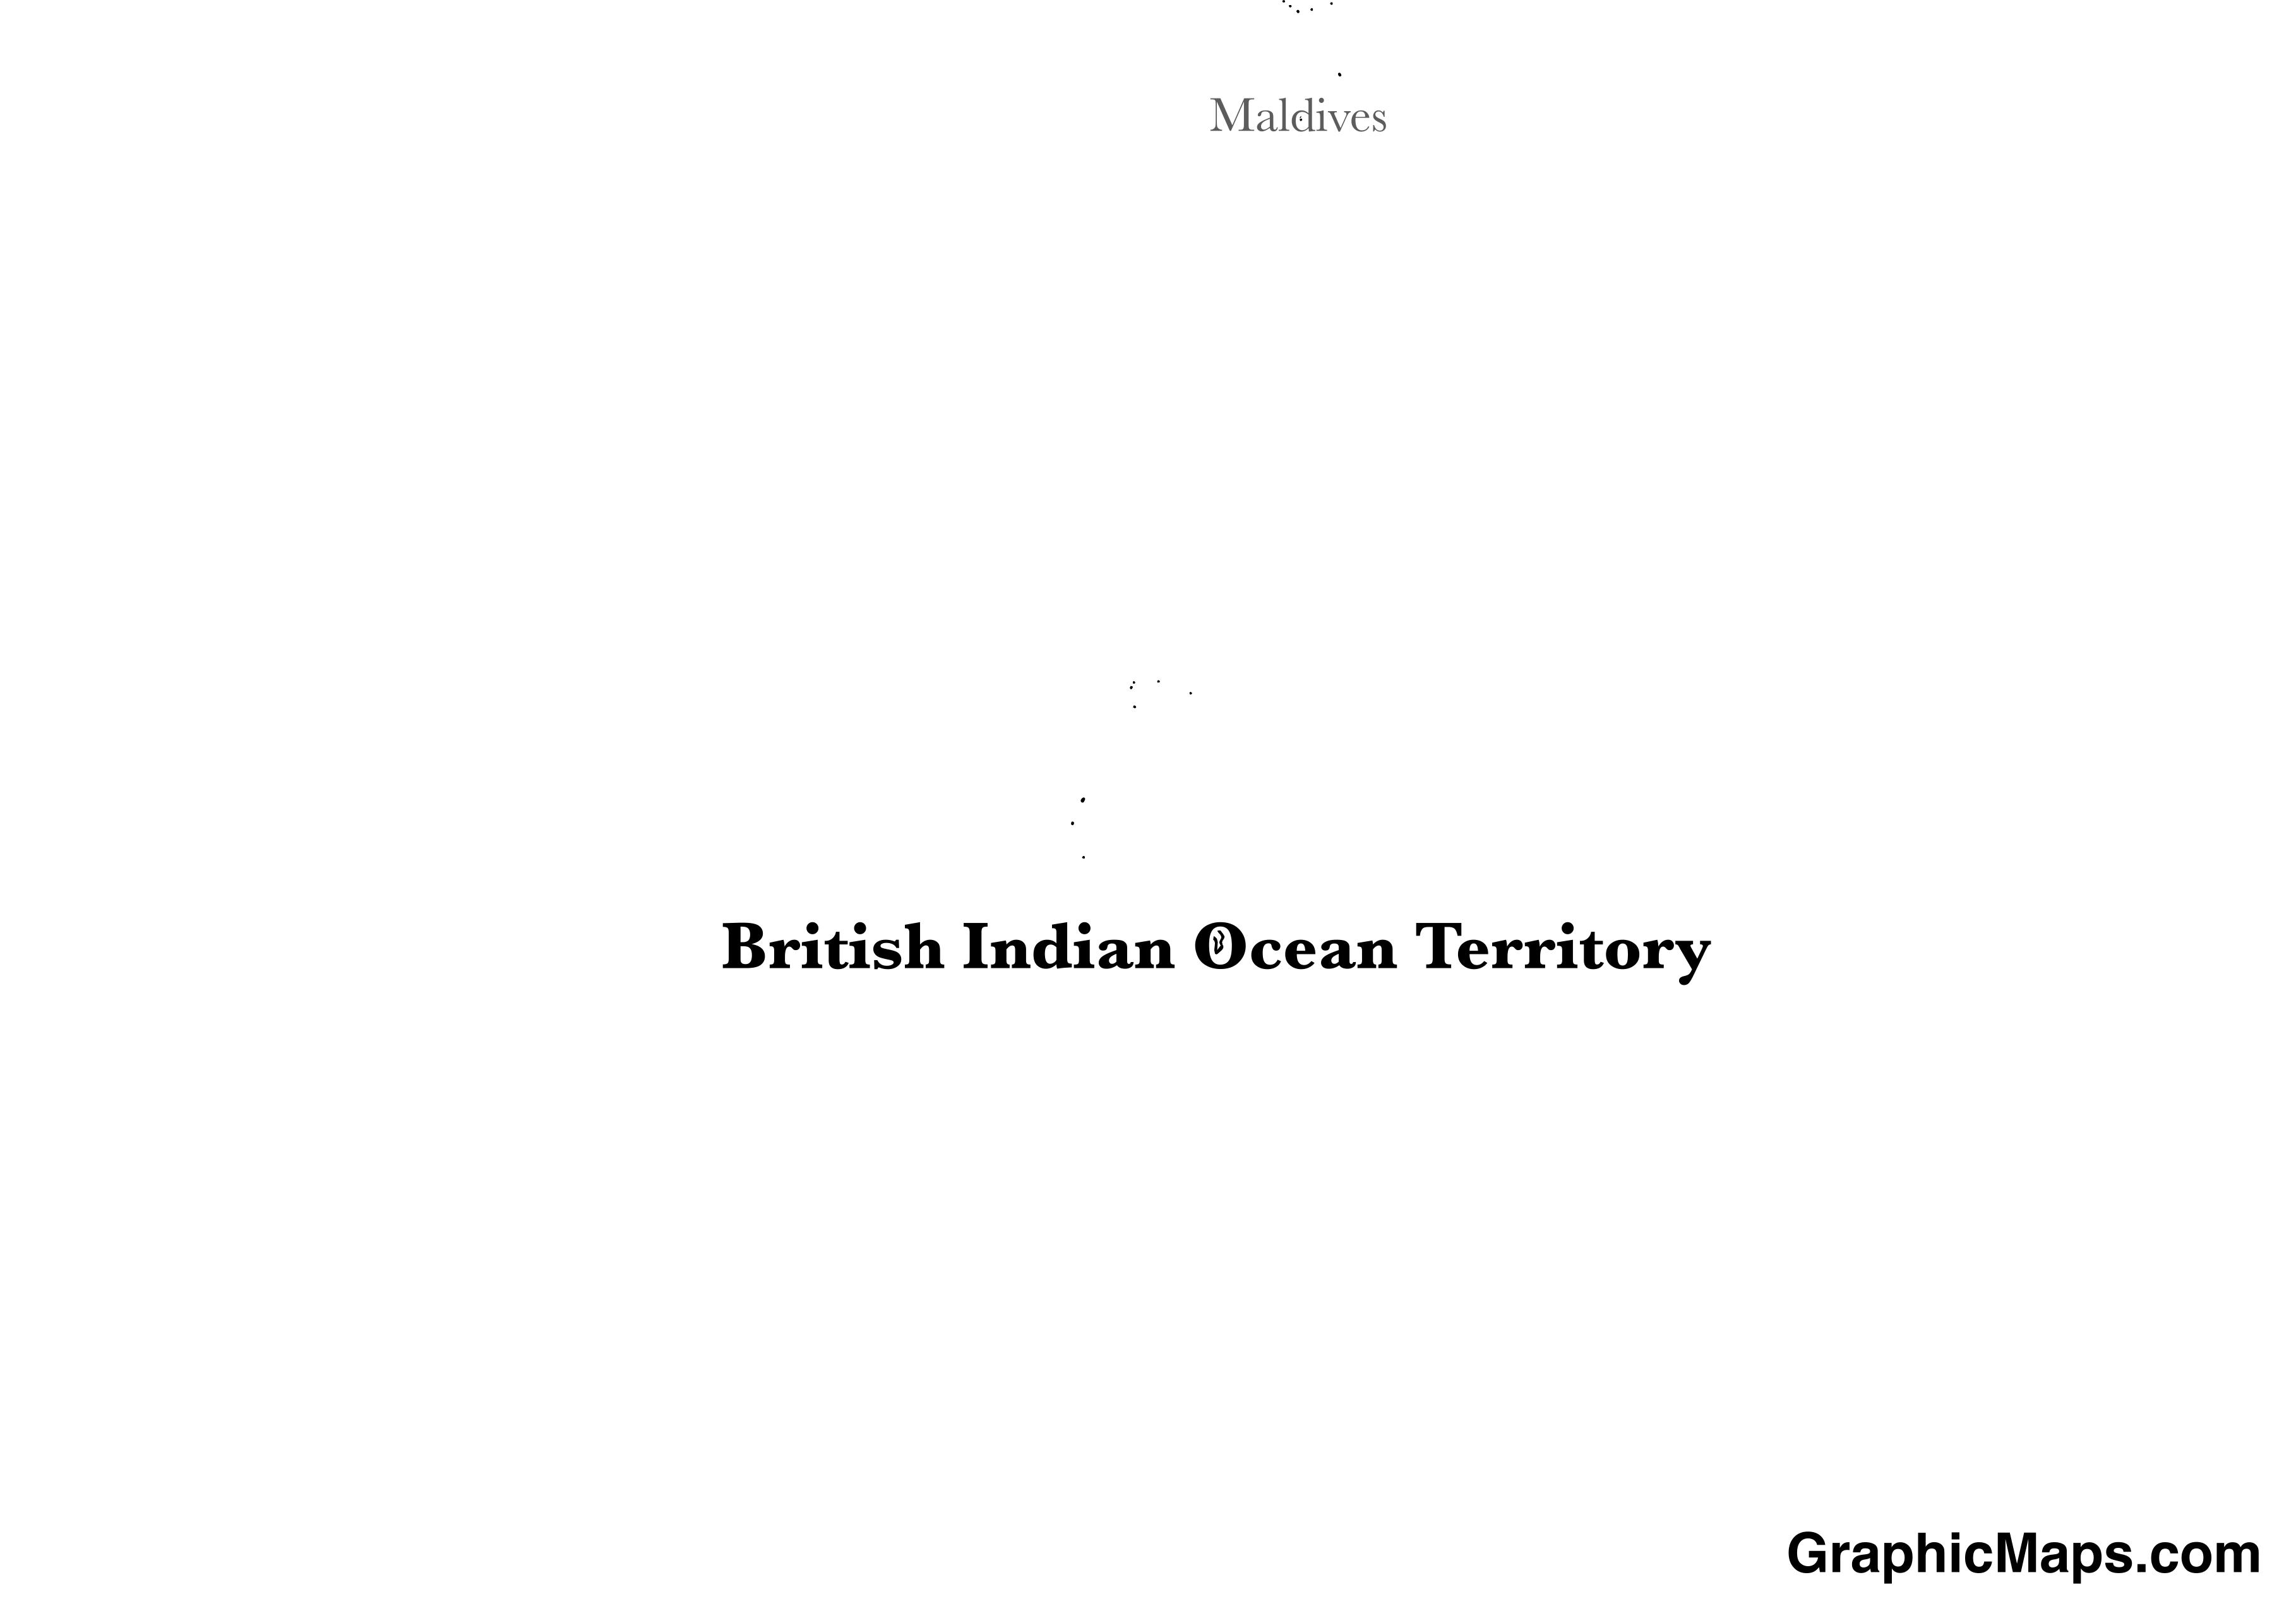 Map showing the location of British Indian Ocean Territory